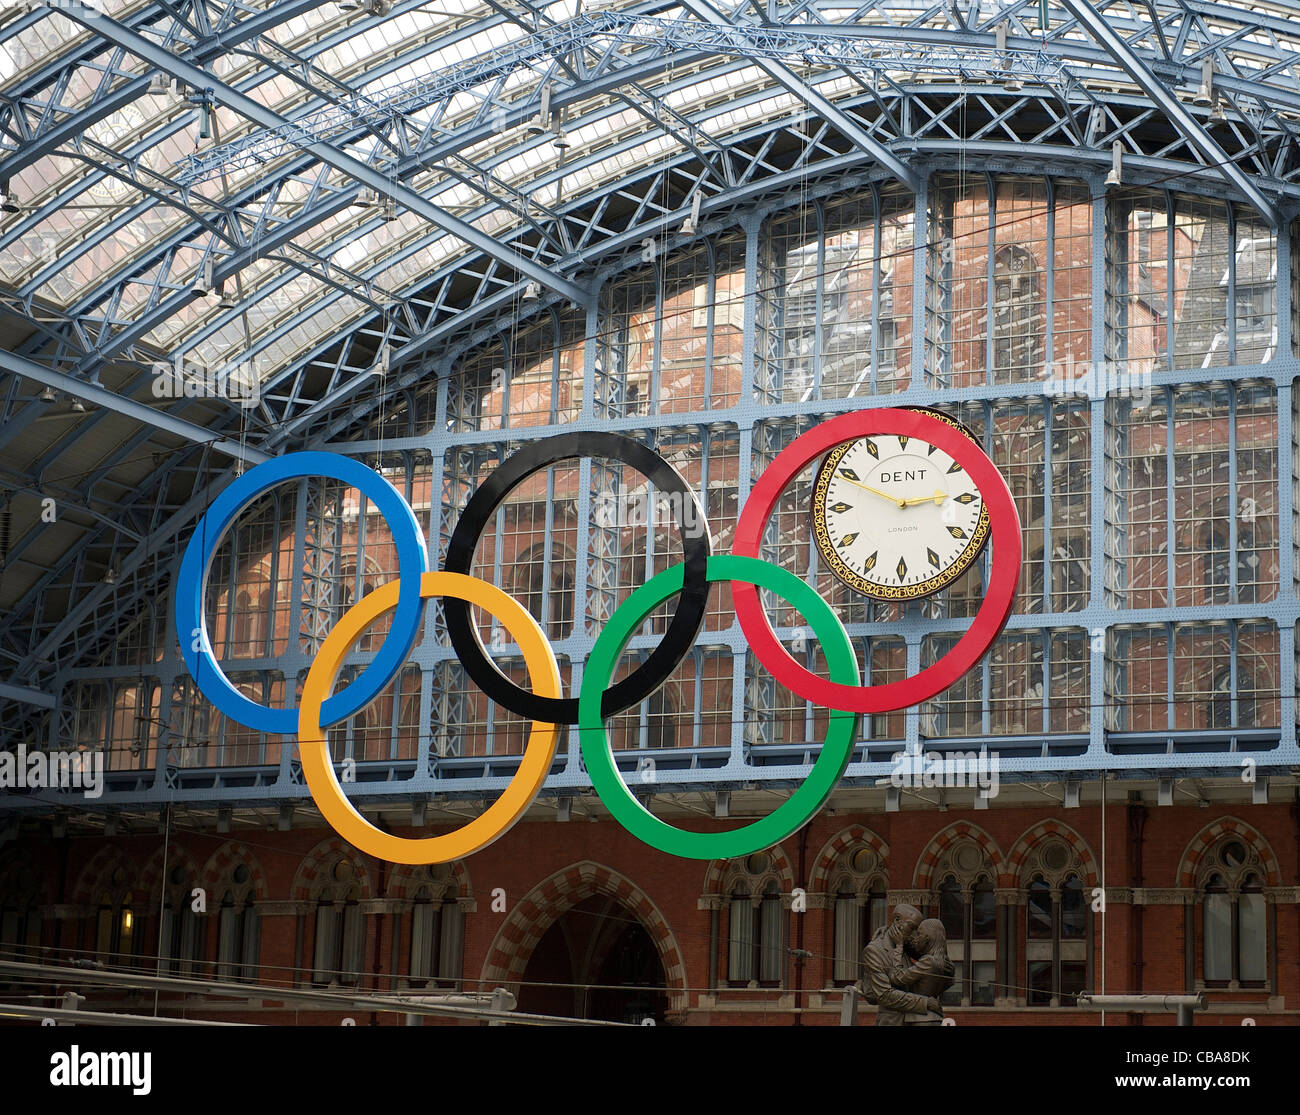 13.4. 2011. London prepares for the 2012 Olympics. Londons first set of giant Olympic Rings at St Pancras International - Stock Image